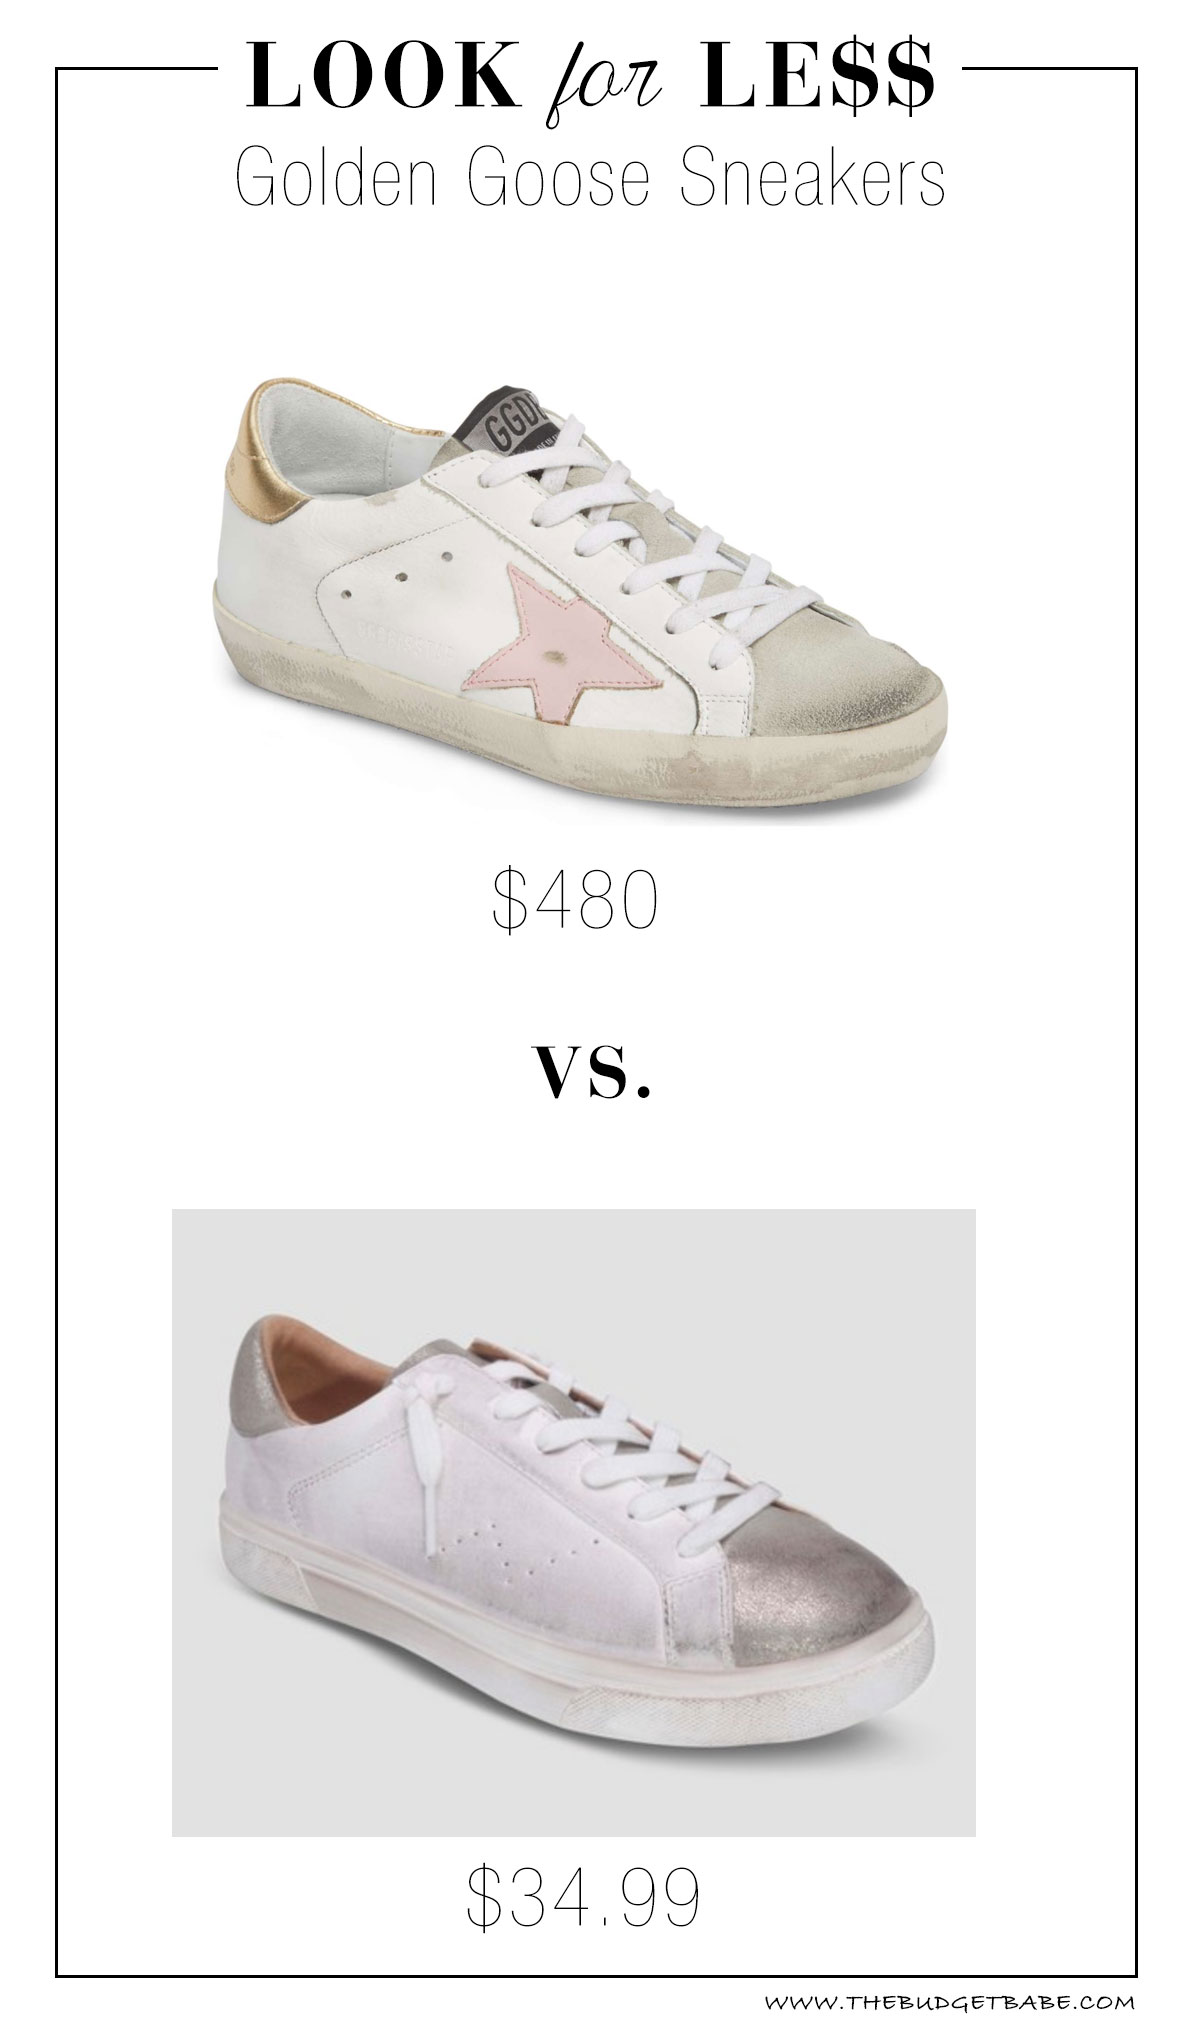 Golden Goose look for less